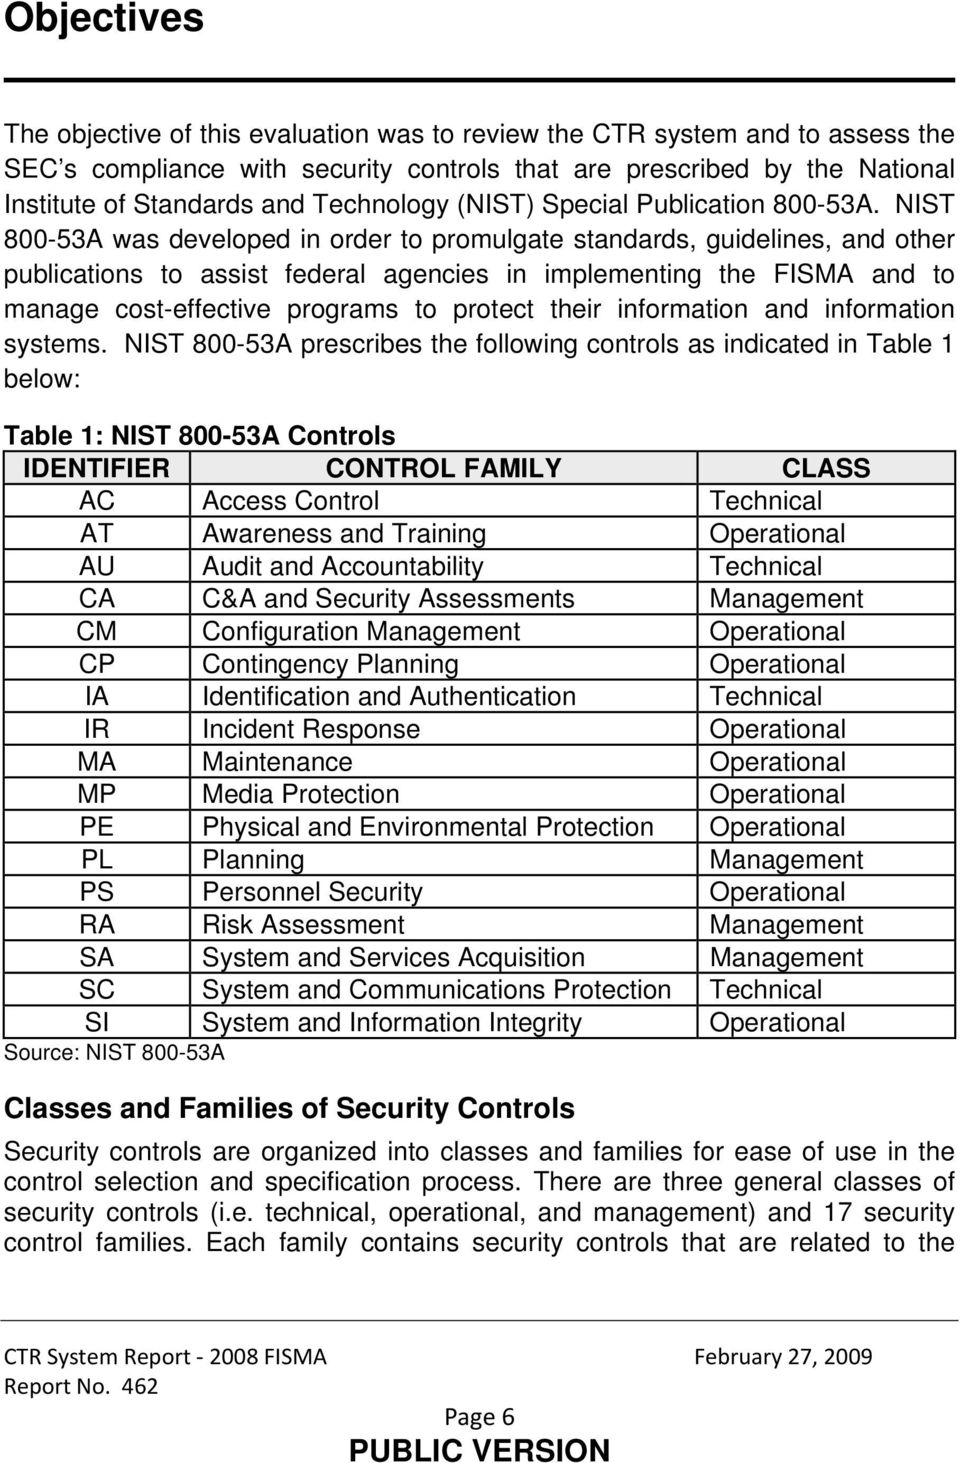 NIST 800-53A was developed in order to promulgate standards, guidelines, and other publications to assist federal agencies in implementing the FISMA and to manage cost-effective programs to protect